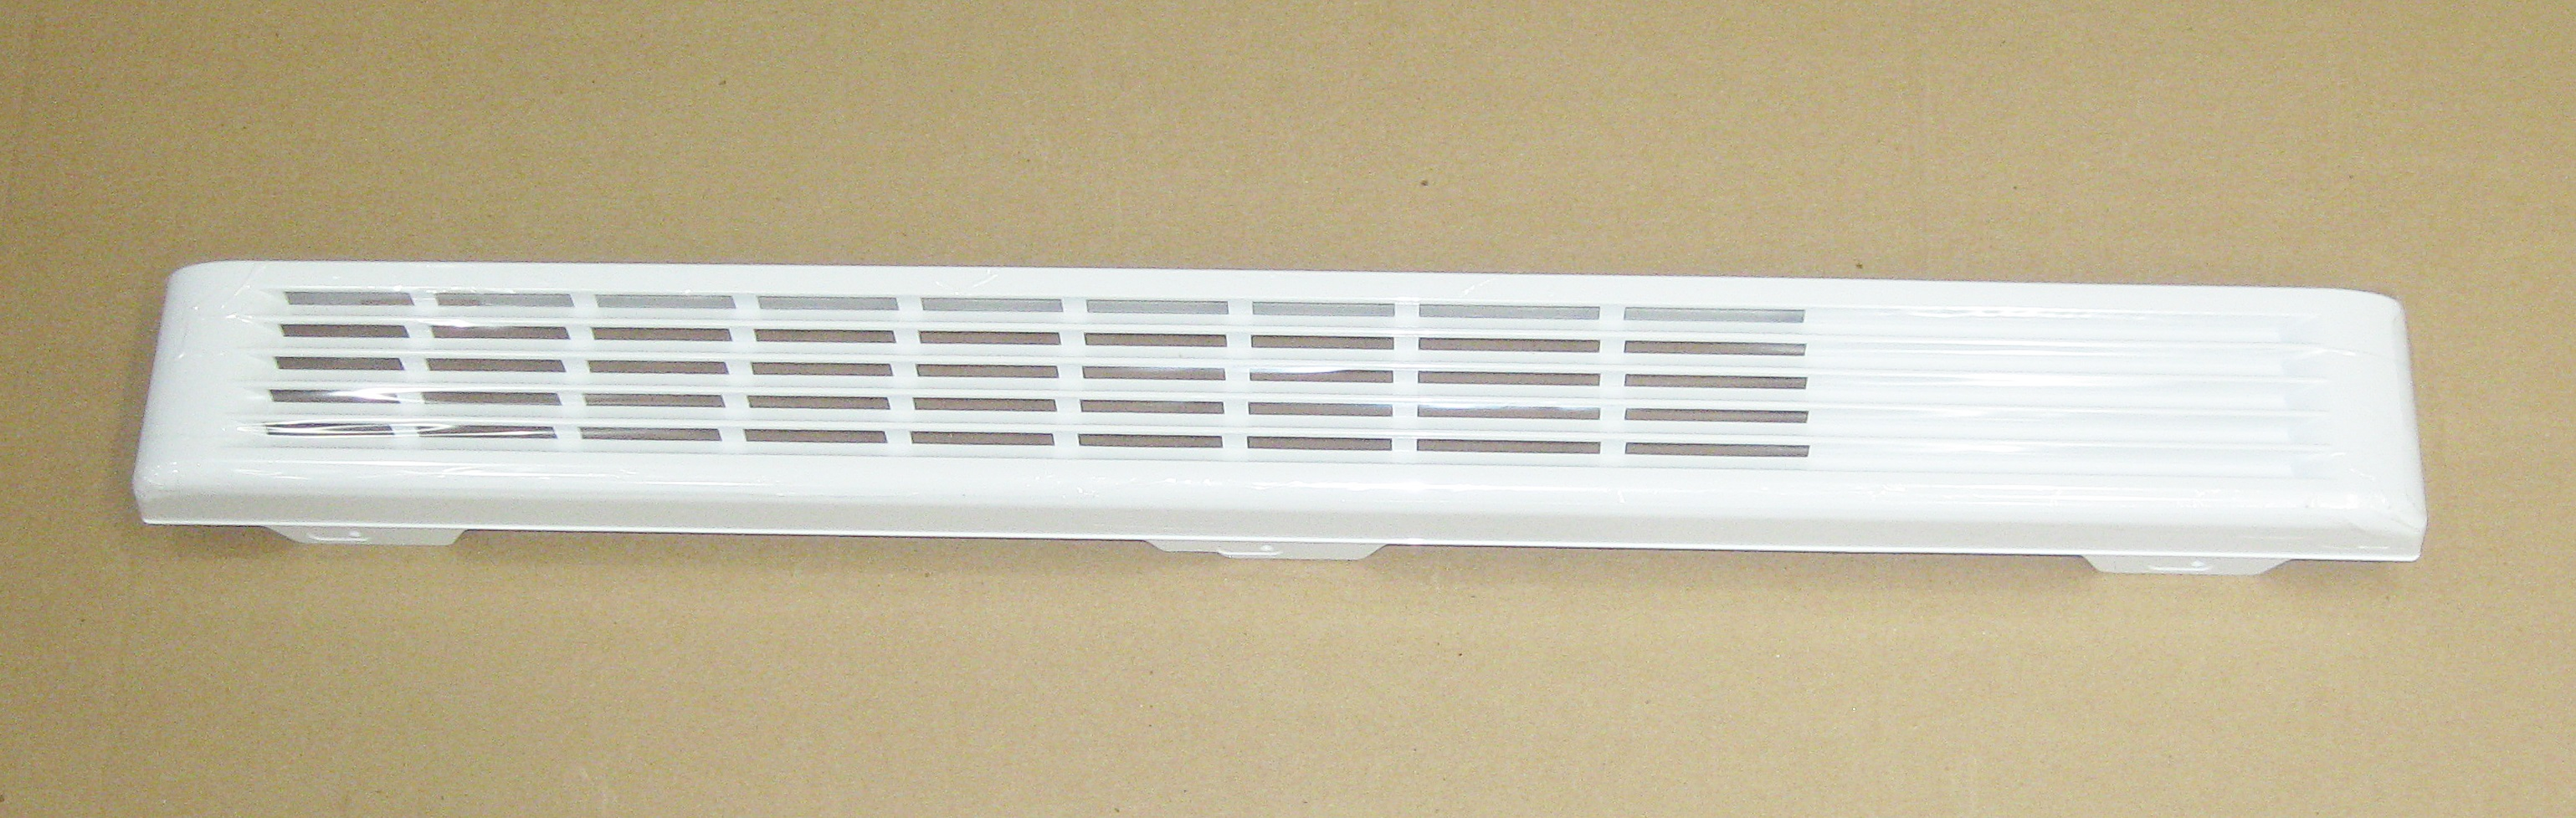 ge microwave vent grille wb07x11084 ap4300589 ps1480936